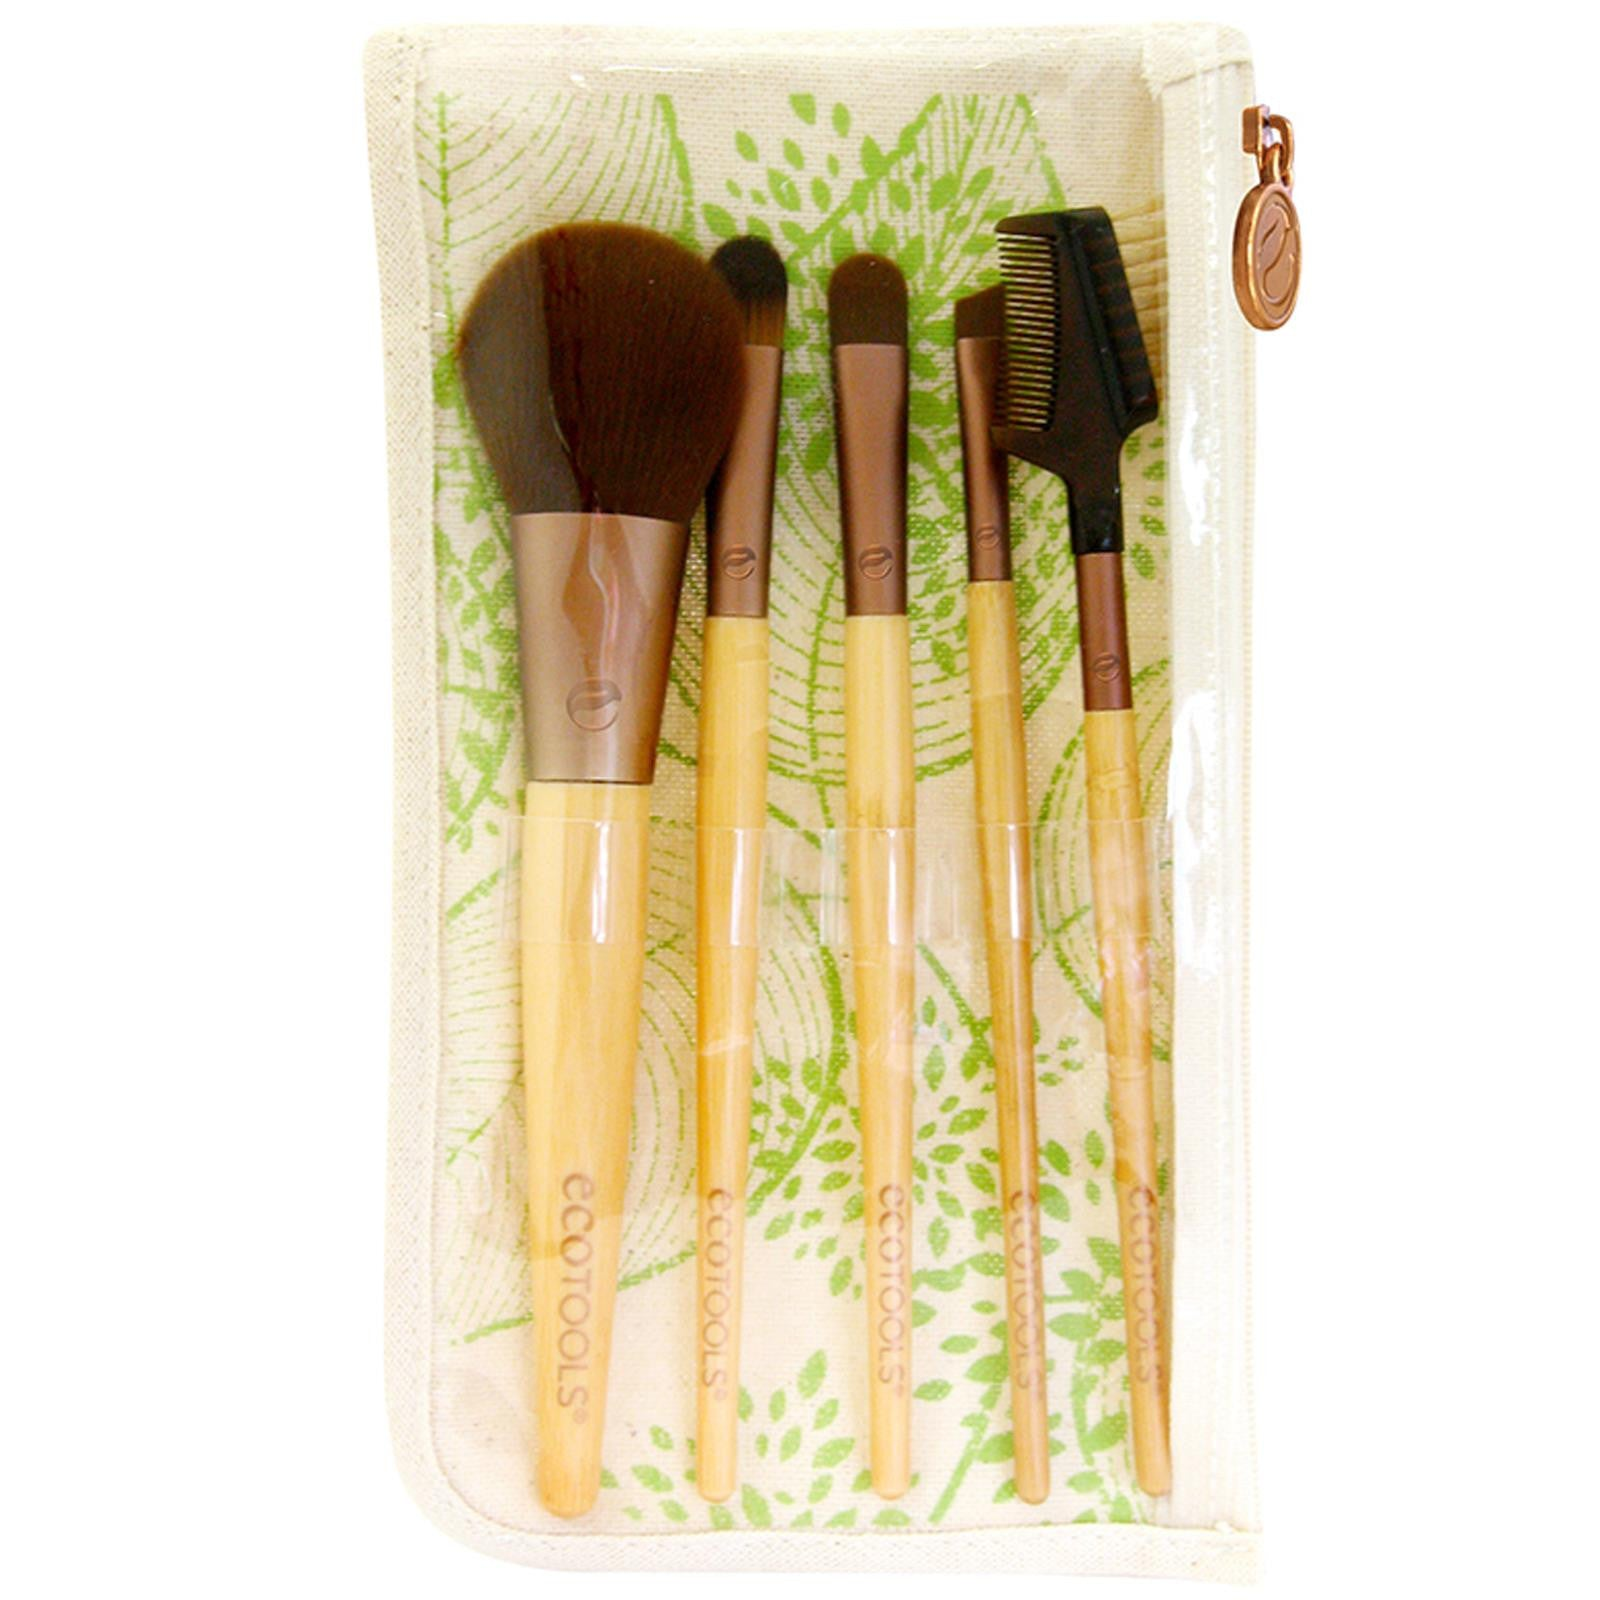 EcoTools - Bamboo 6 Piece Brush Set